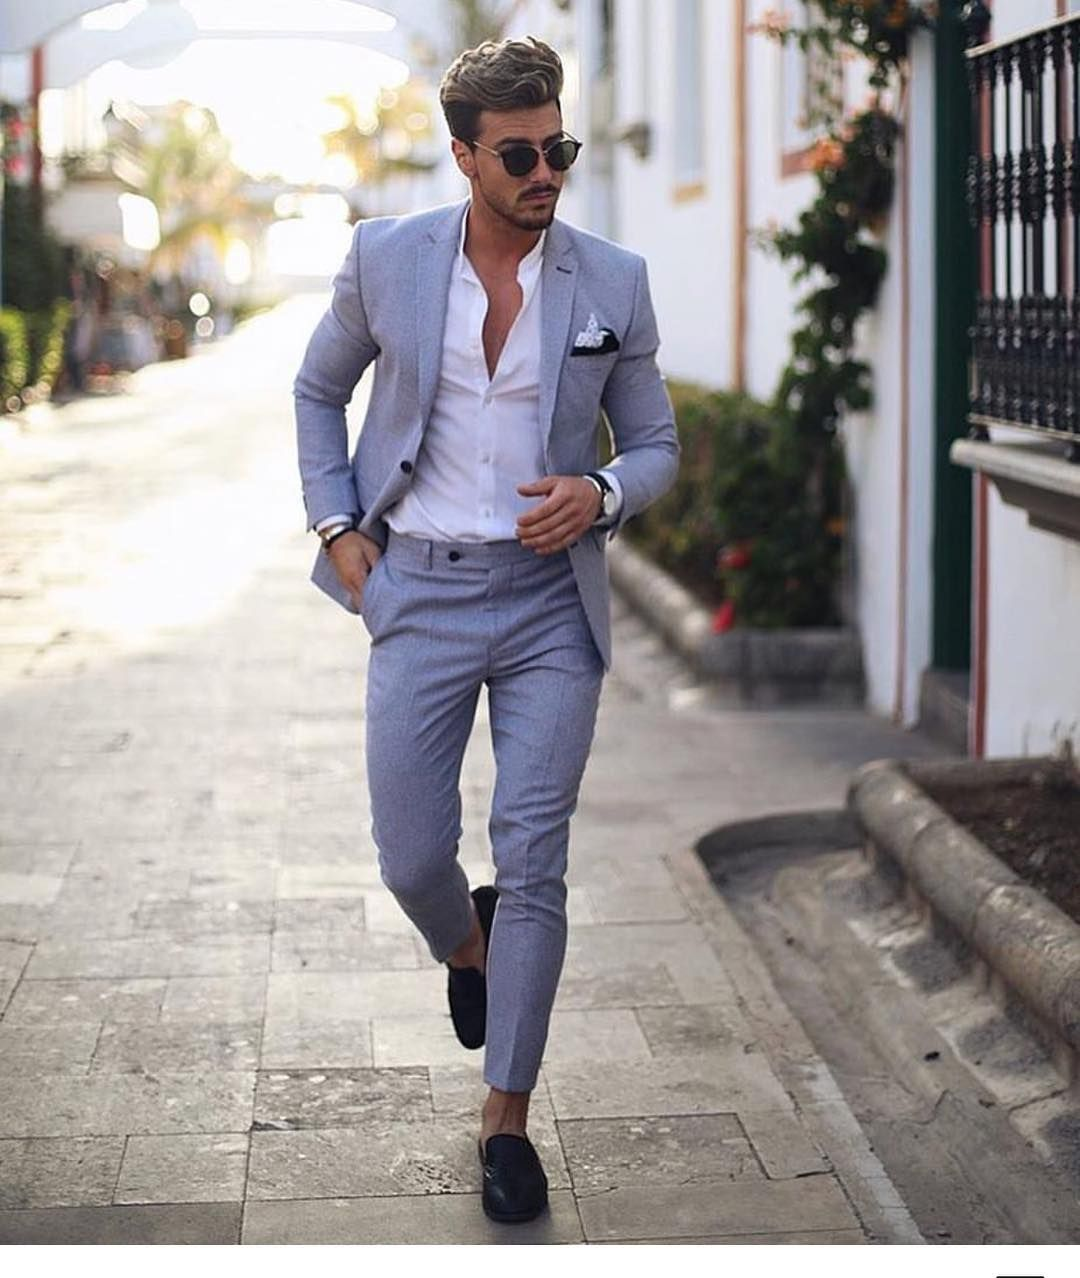 500+ Casual chic Man outfits ideas